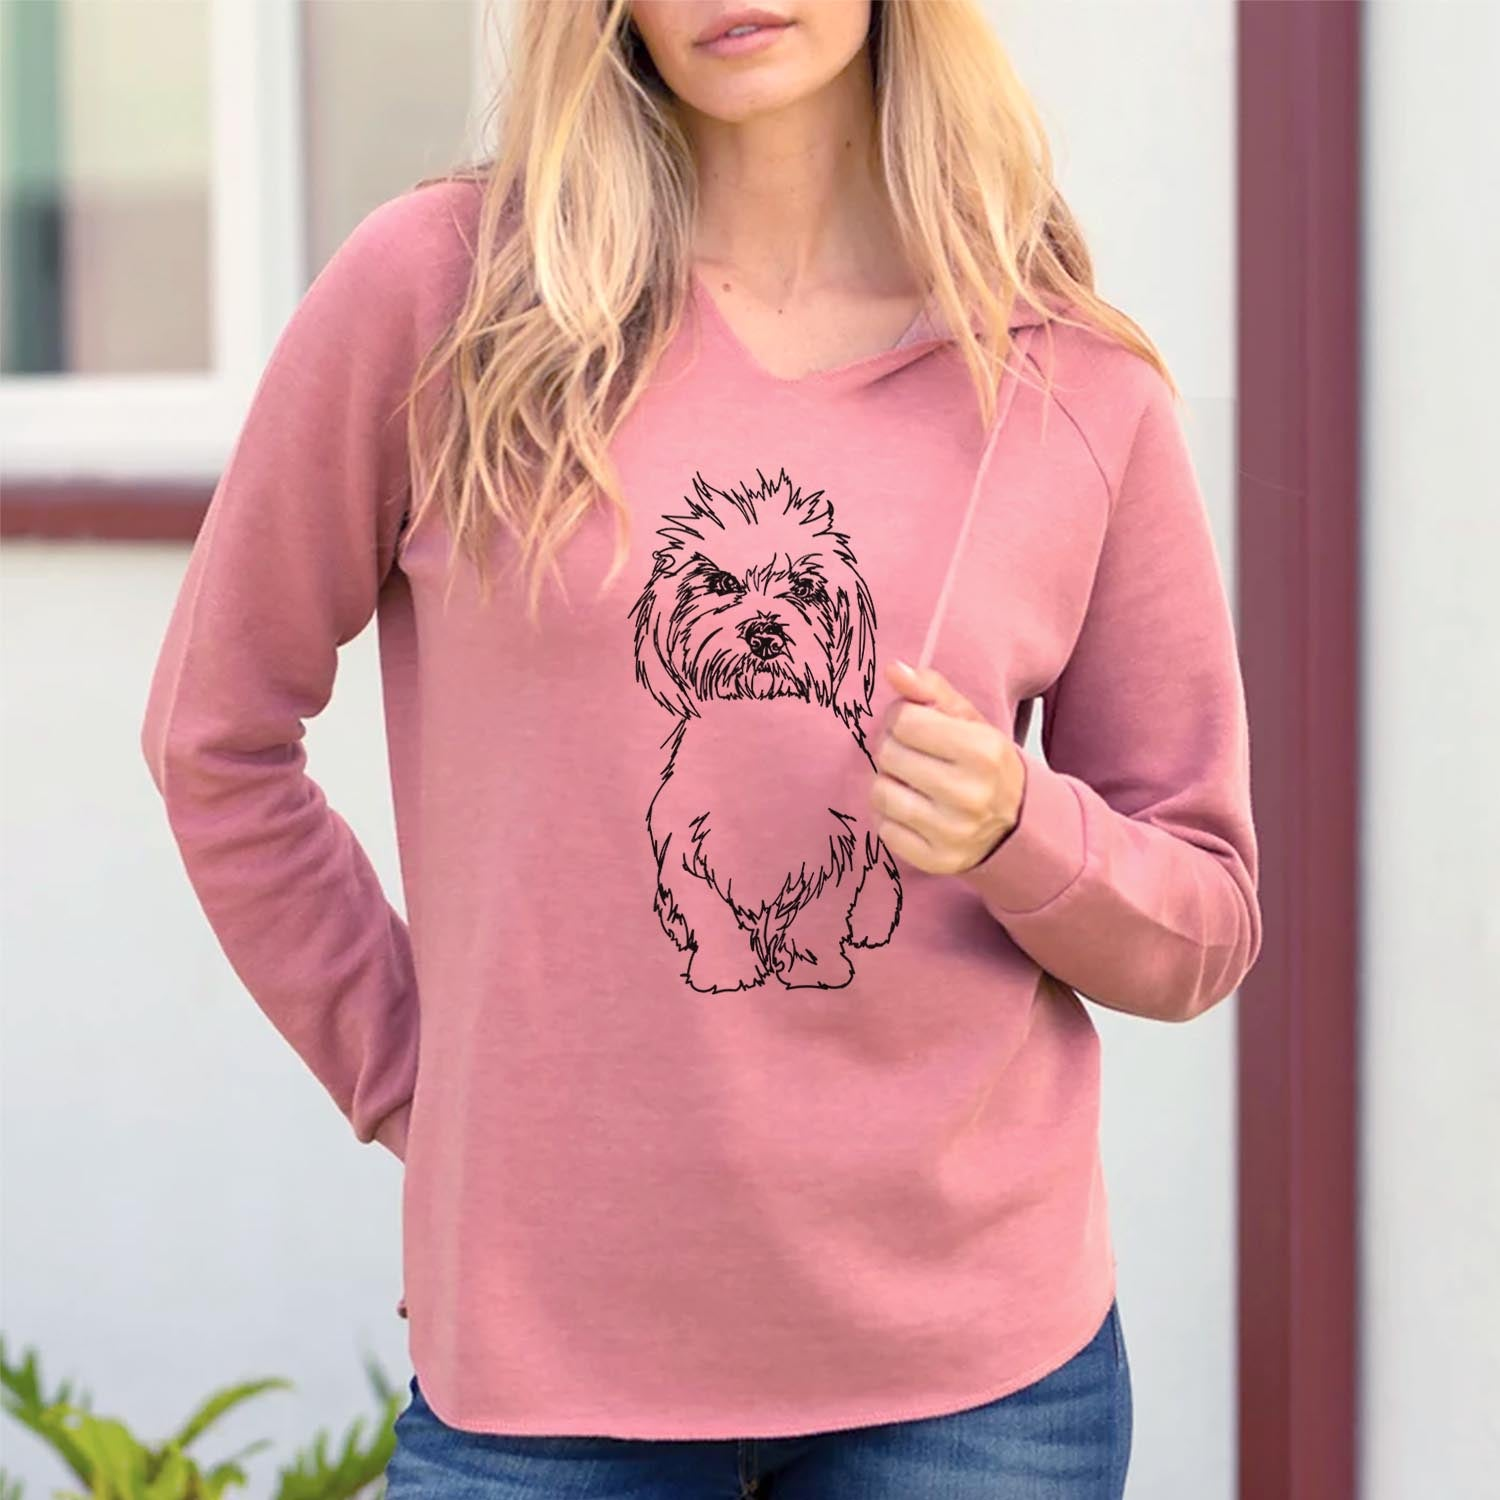 Doodled Fluffers the Coton de Tulear - Cali Wave Hooded Sweatshirt